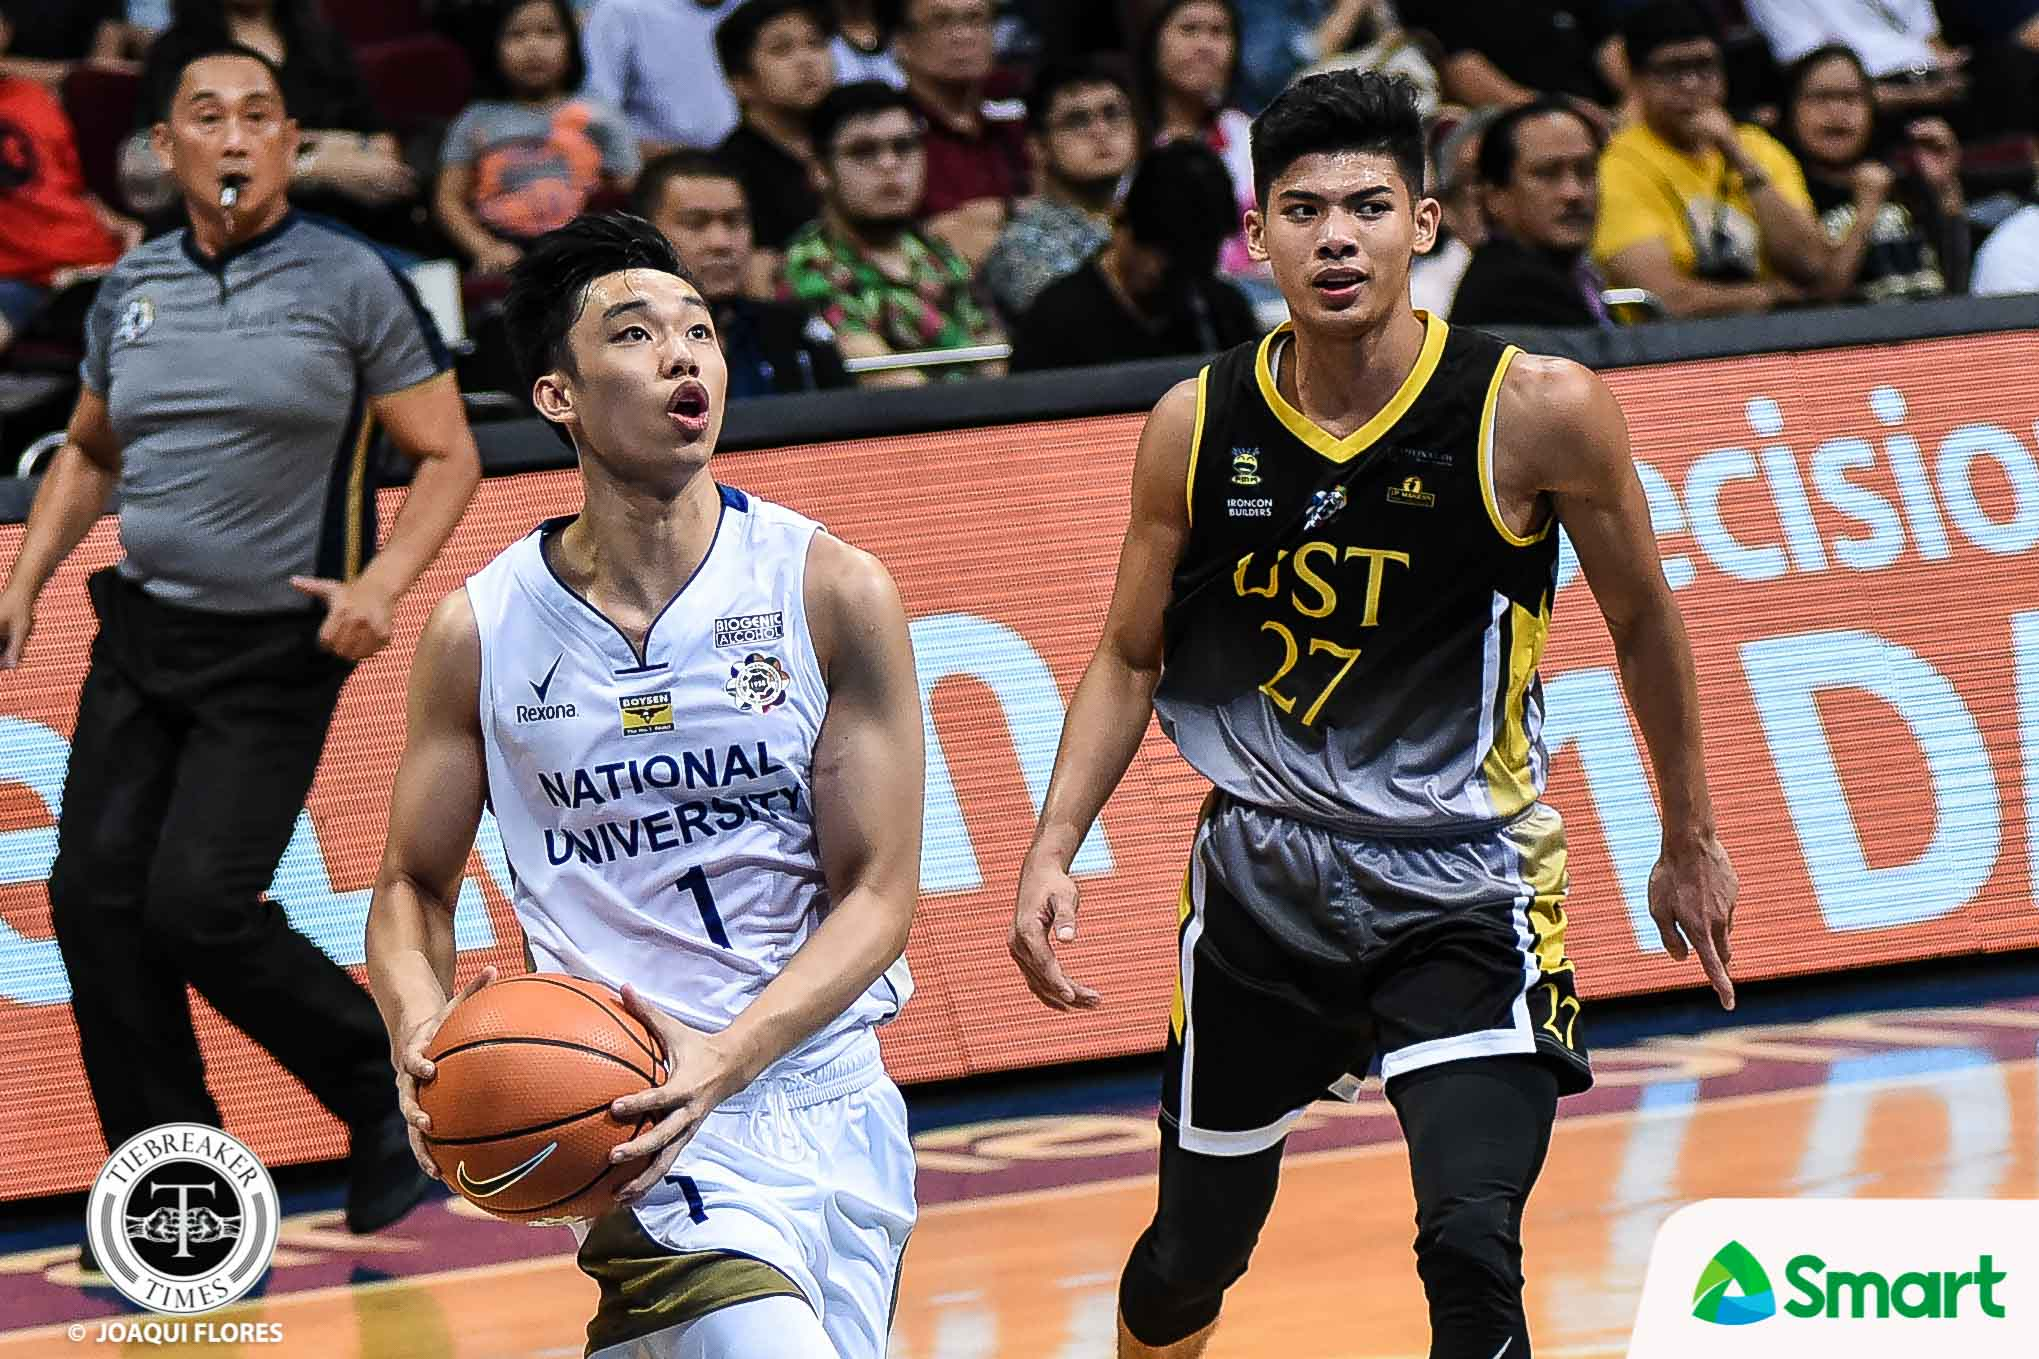 Tiebreaker Times Top rookies Dave Ildefonso, CJ Cansino remain focused on team goal Basketball News NU UAAP UST  UST Men's Basketball UAAP Season 81 Men's Basketball UAAP Season 81 NU Men's Basketball Dave Ildefonso CJ Cansino